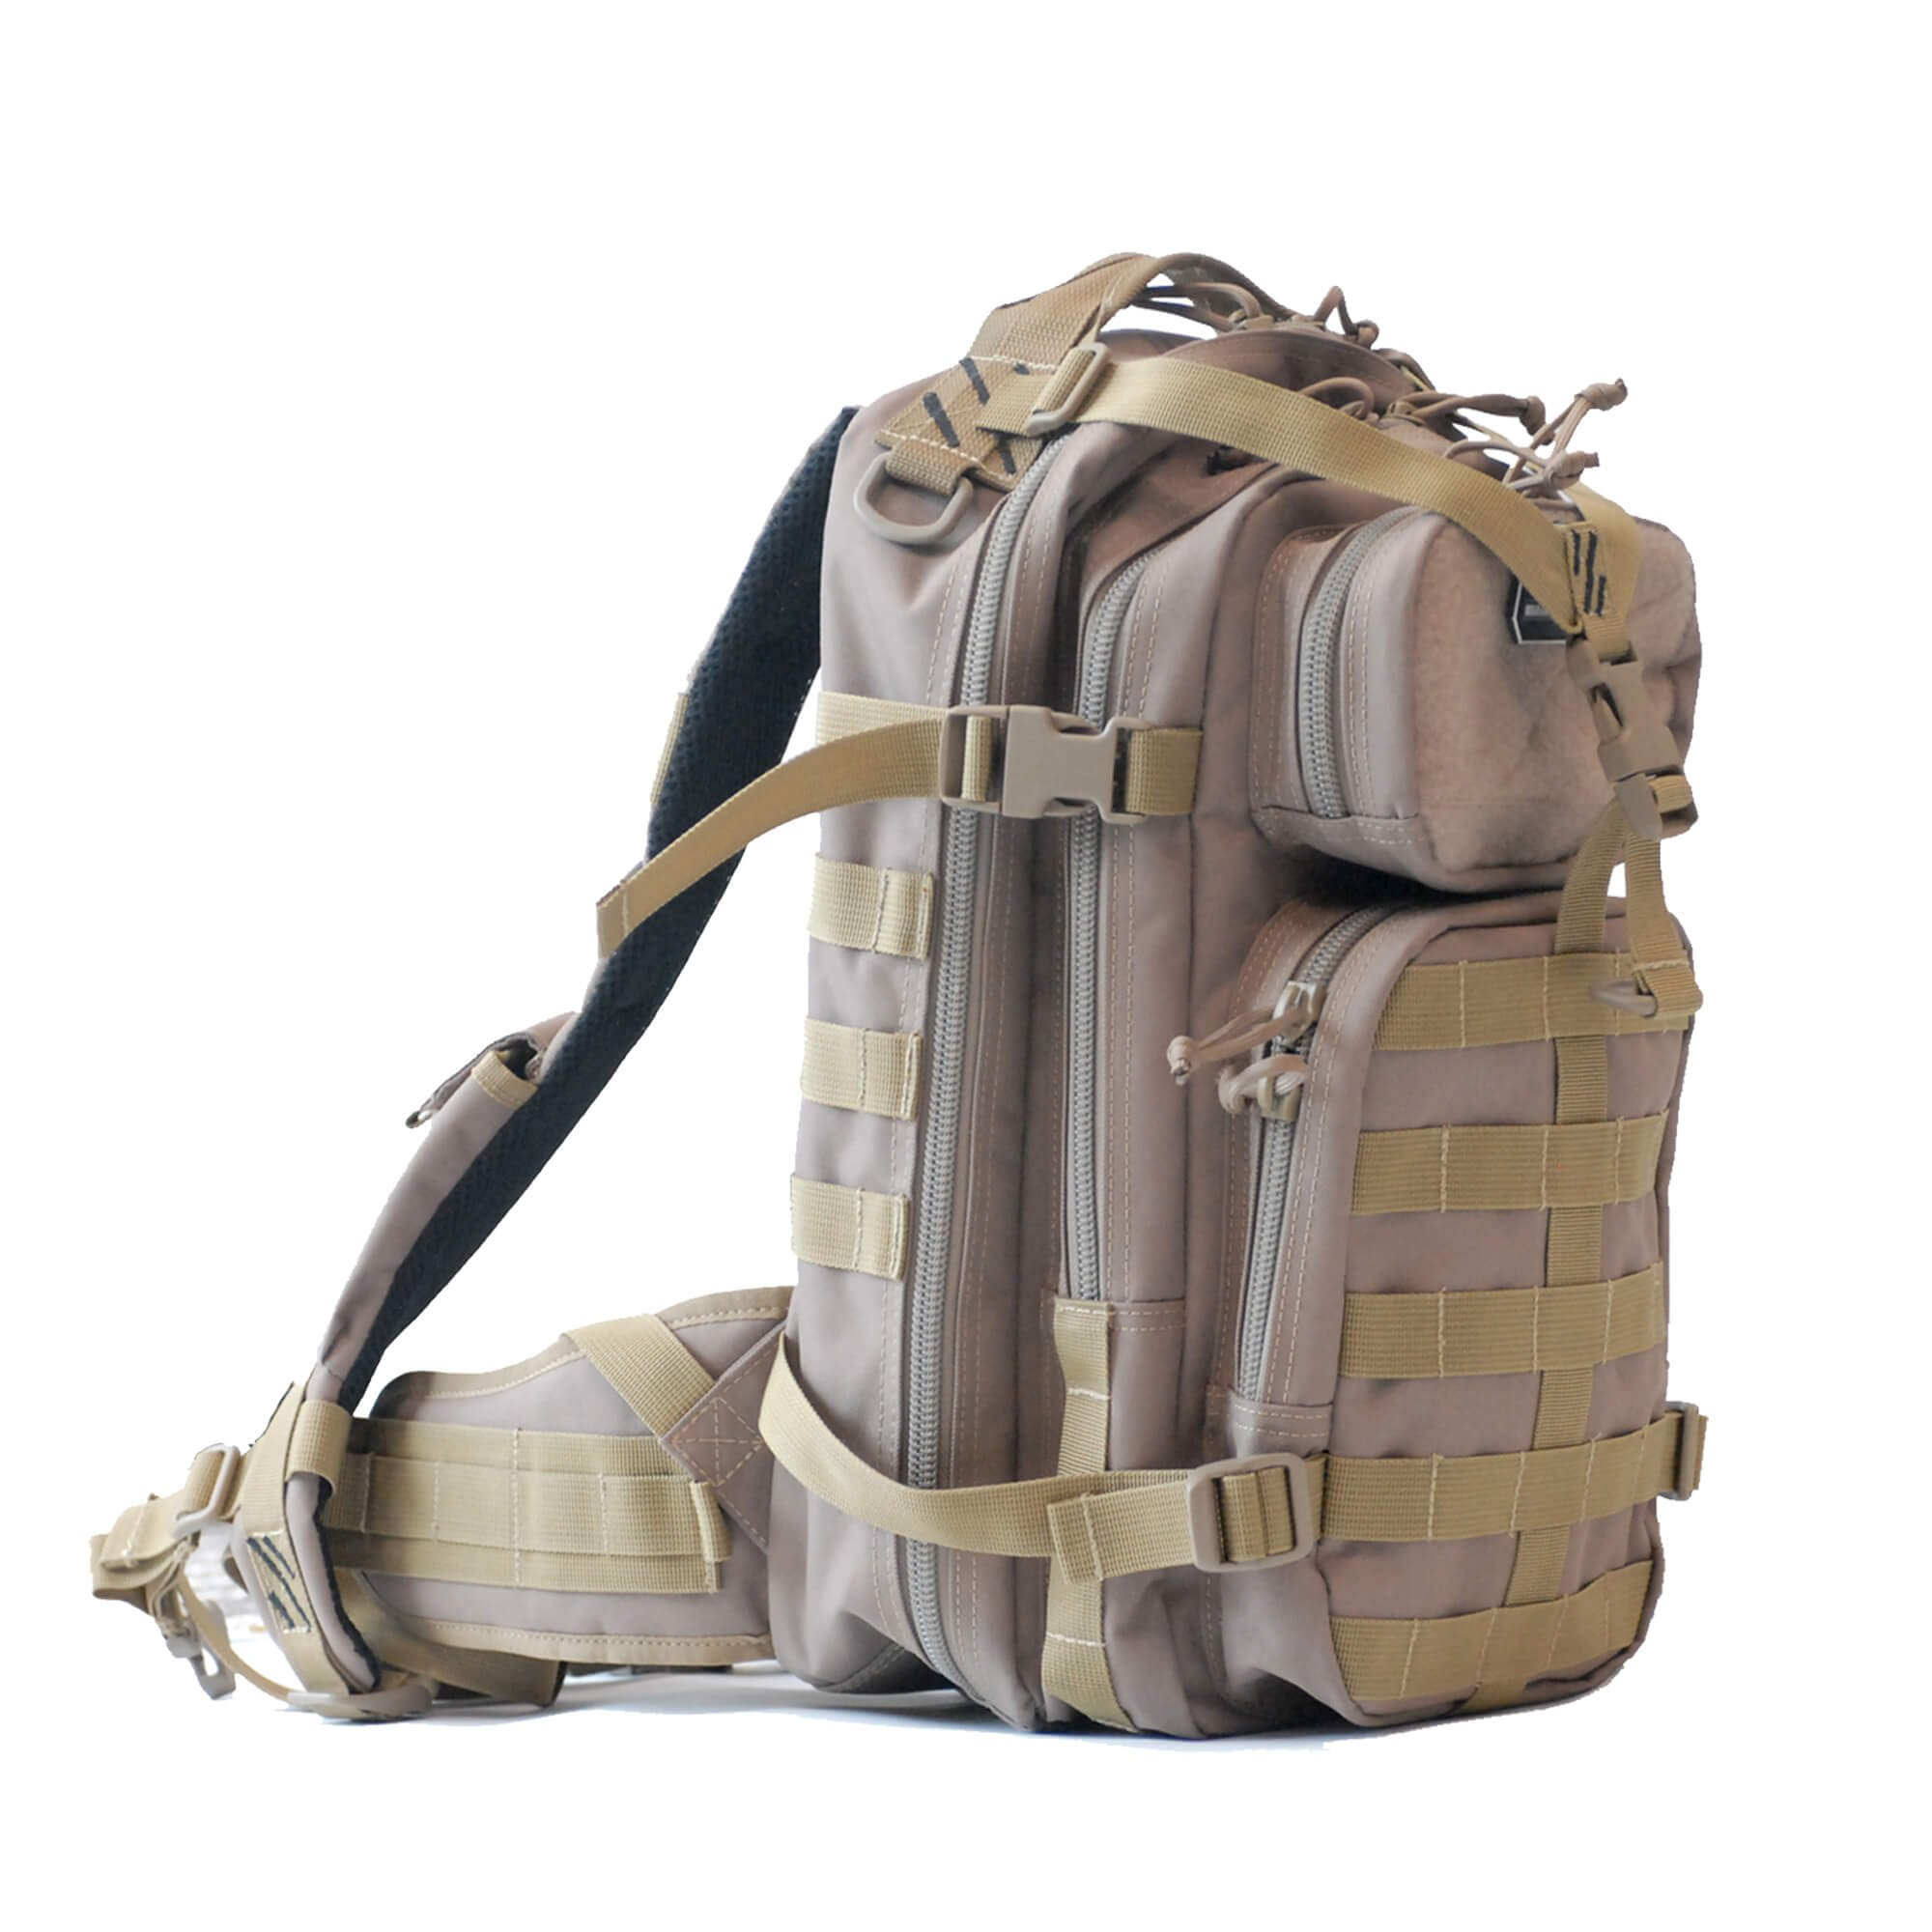 G-Outdoors, Inc. Soft Tactical Backpack with Pull-Out Rain Cover, Tan